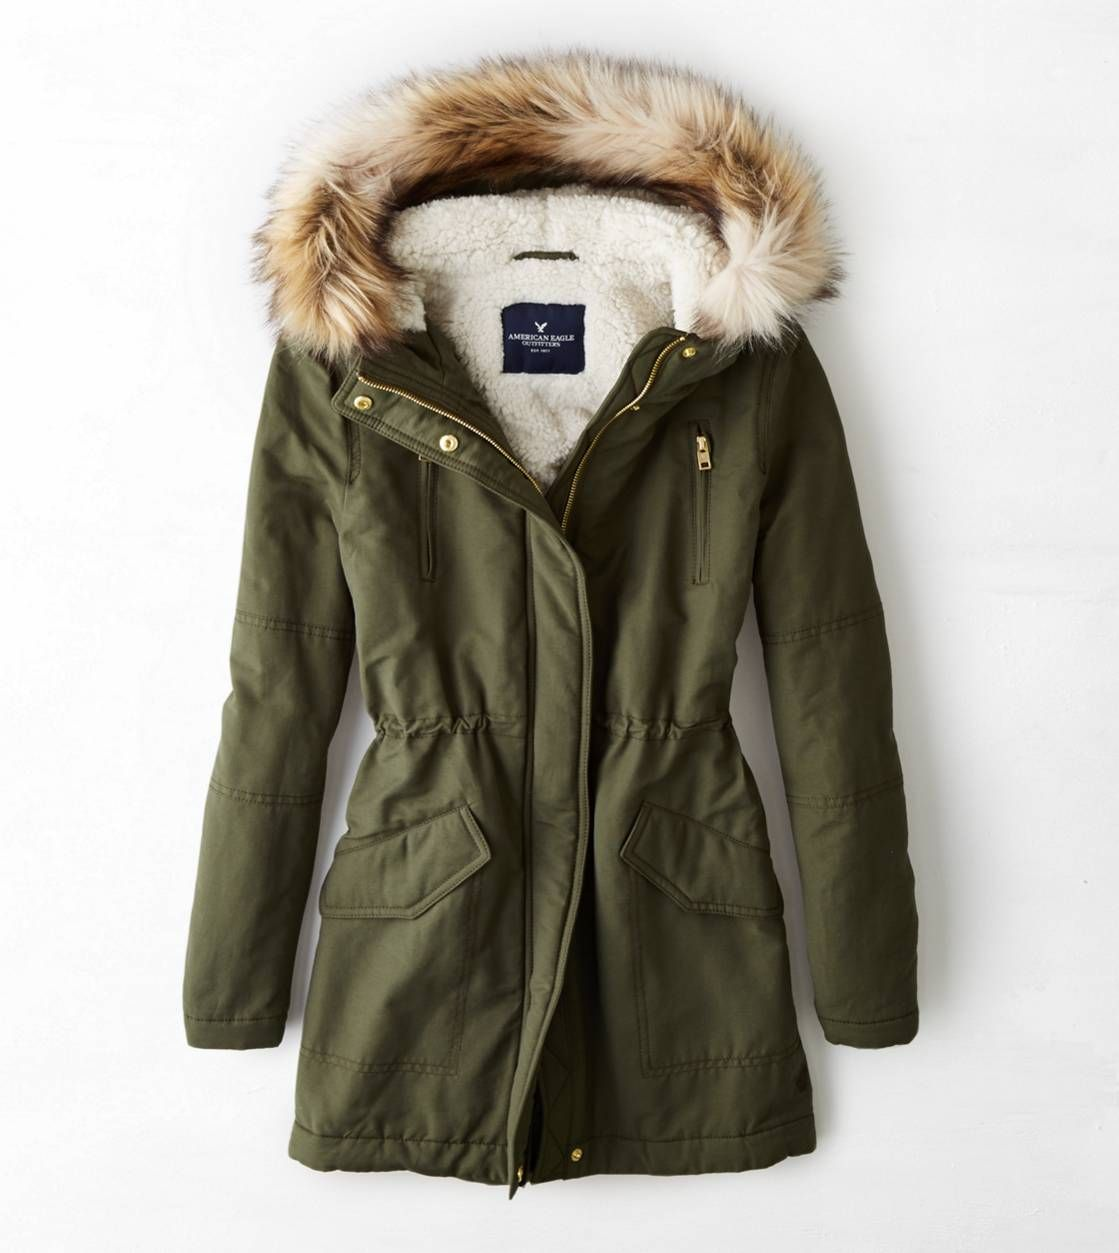 Winter parka no fur